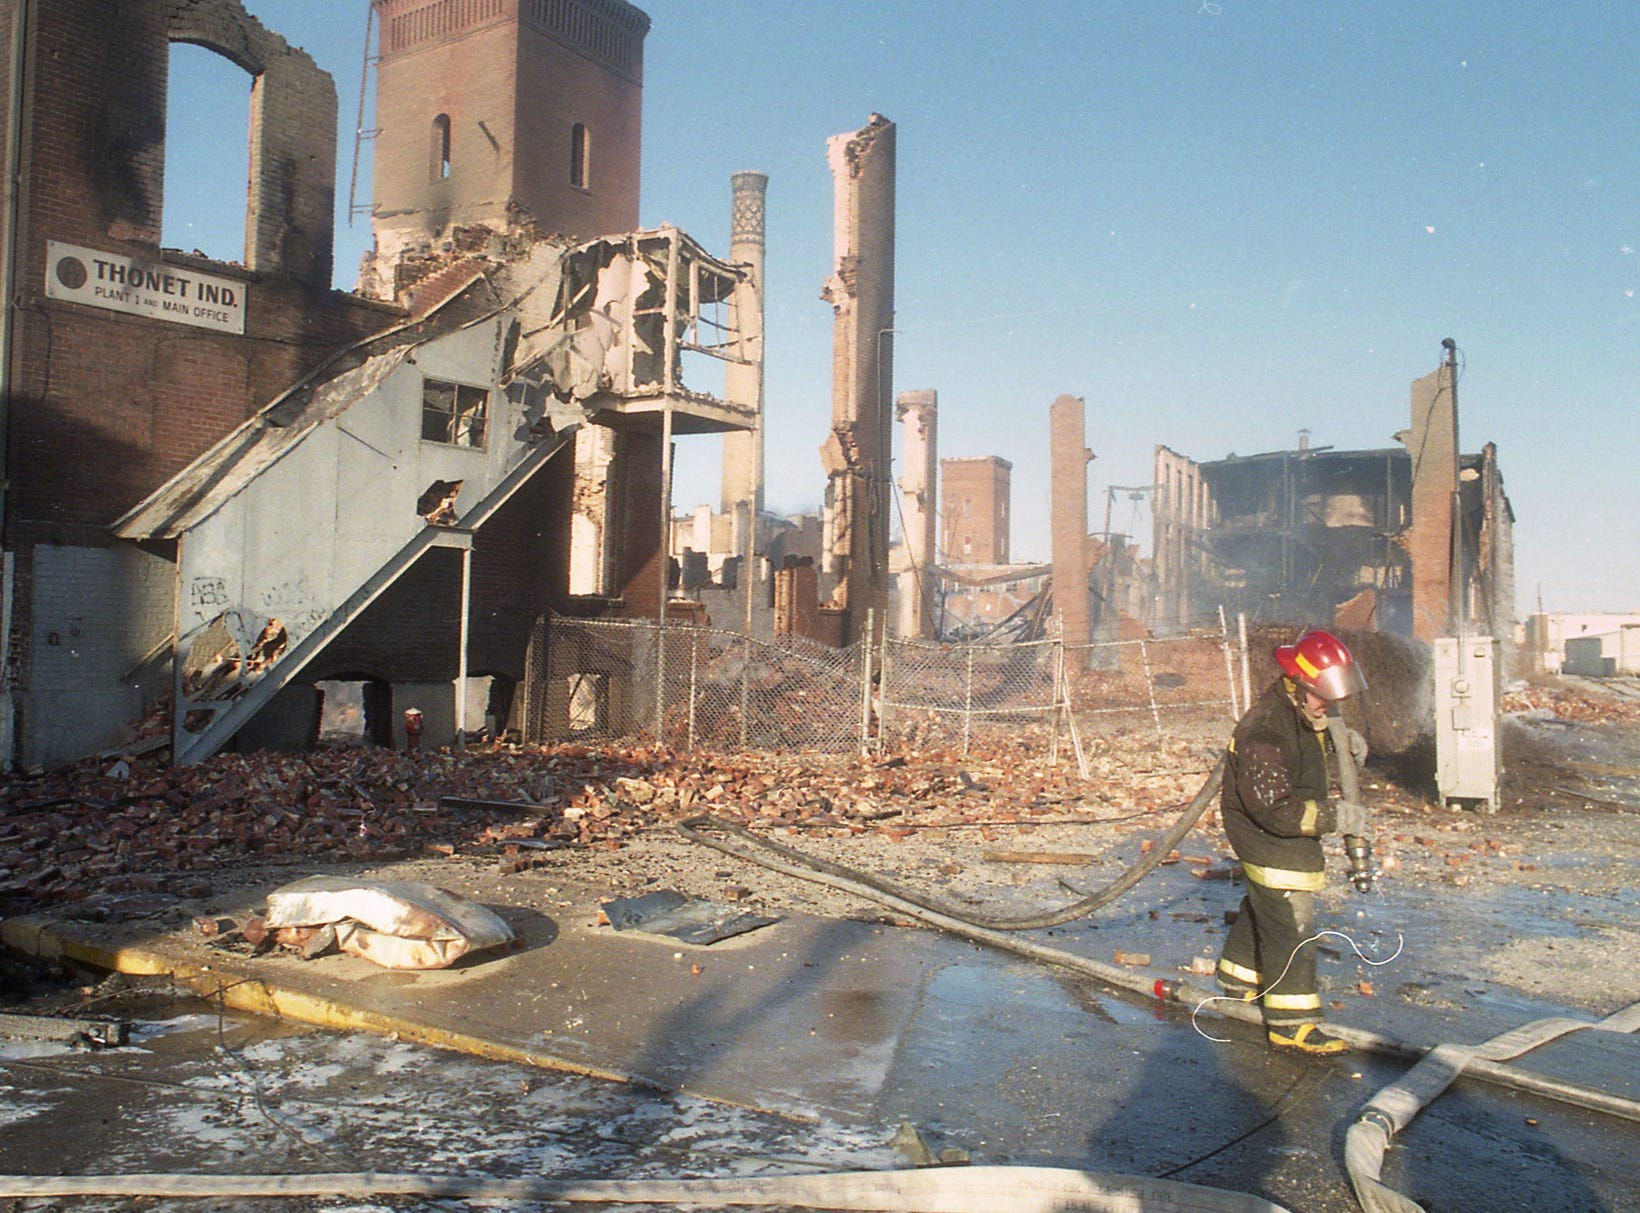 City of York Fire Department hoses down hot spots the morning after the fire. A fire began at the former Thonet Furniture plant at 491 East Princess Street in York on December 11, 1993. Eventually, the four alarm fire spread through the complex of buildings and several other properties.